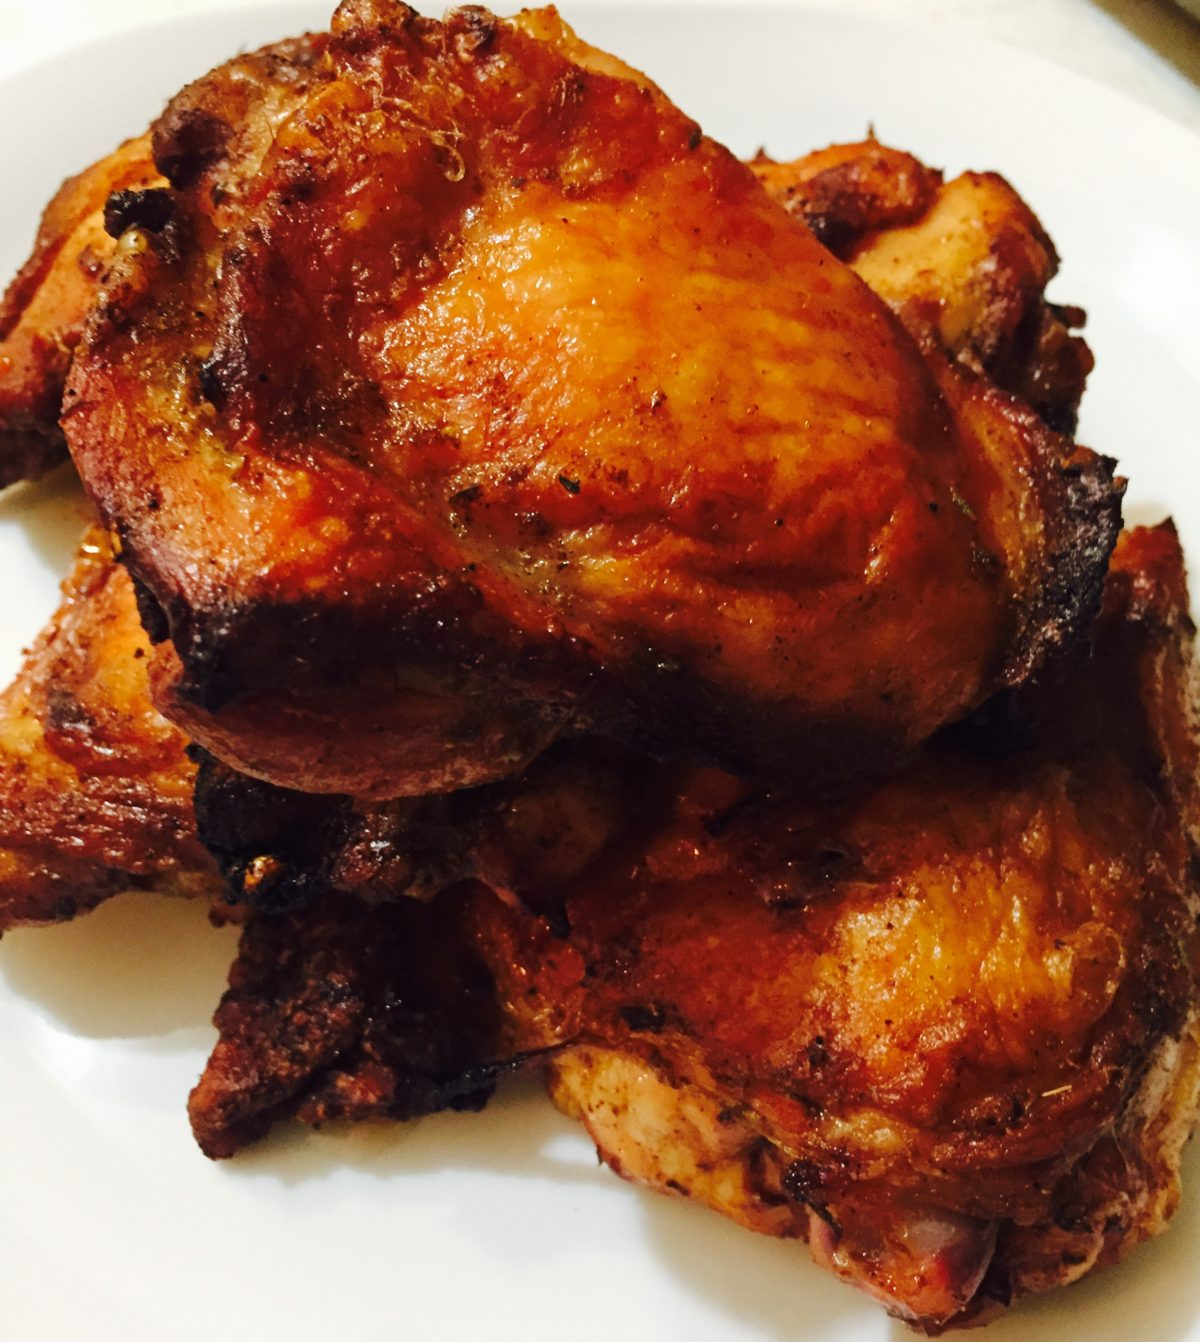 Pollo a la Brasa: Peruvian Roasted Chicken